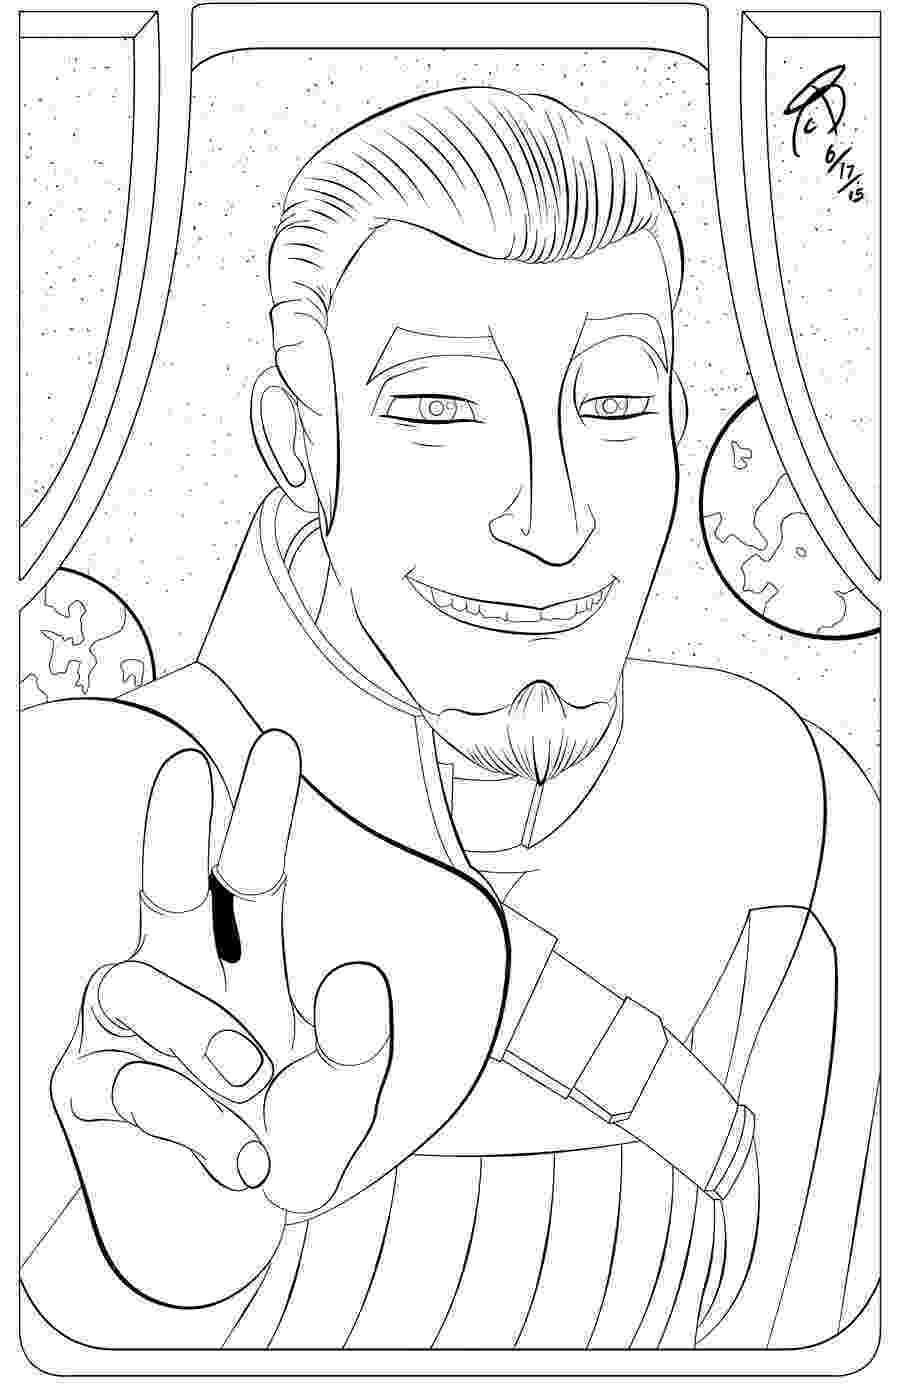 disney xd colouring pages shake it up coloring pages coloring home disney pages colouring xd